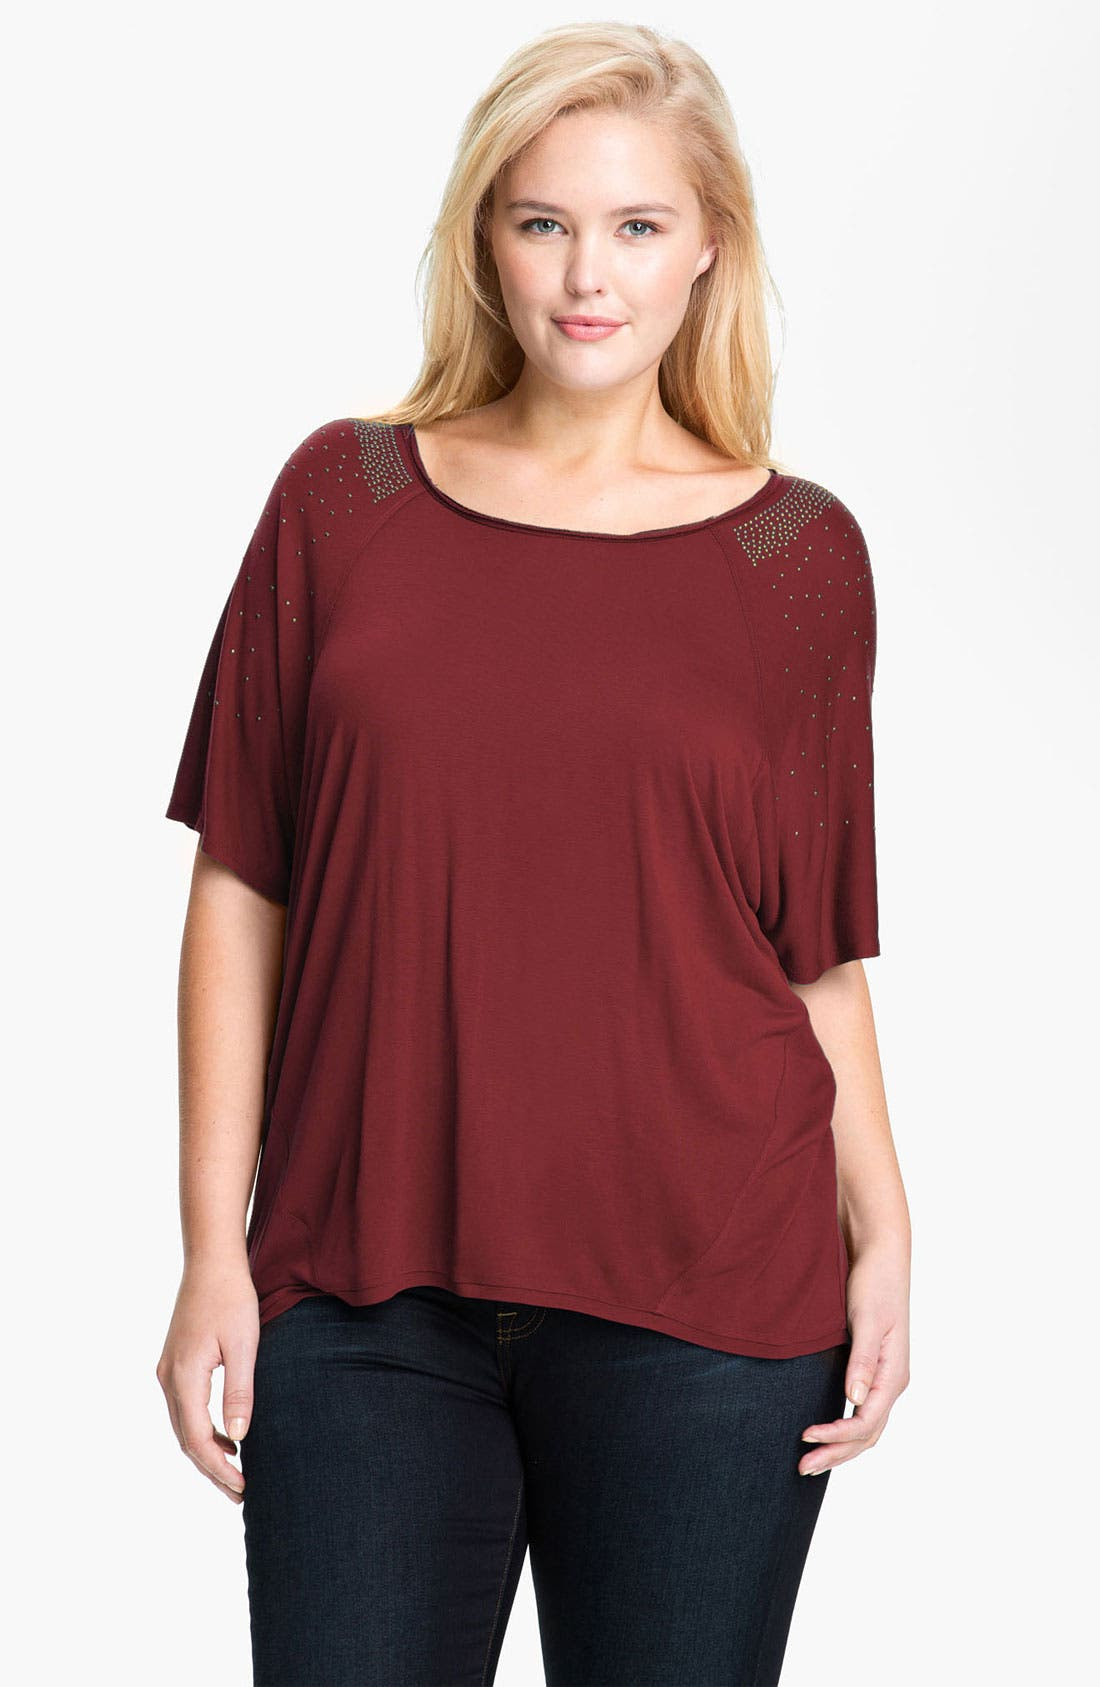 Alternate Image 1 Selected - Kische Studded Knit Top (Plus)